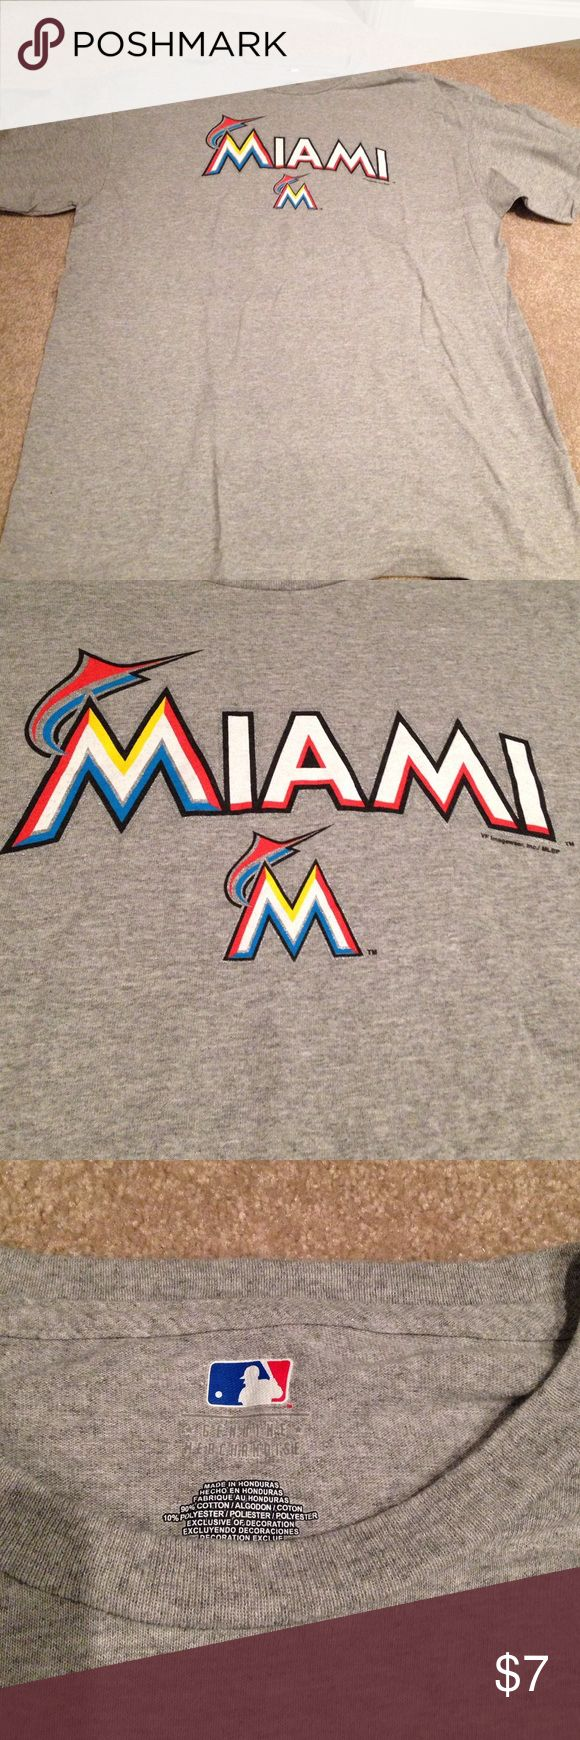 Men's Miami Marlins Tshirt Men's Miami Marlins Tshirt. Gray. Majestic Shirts Tees - Short Sleeve